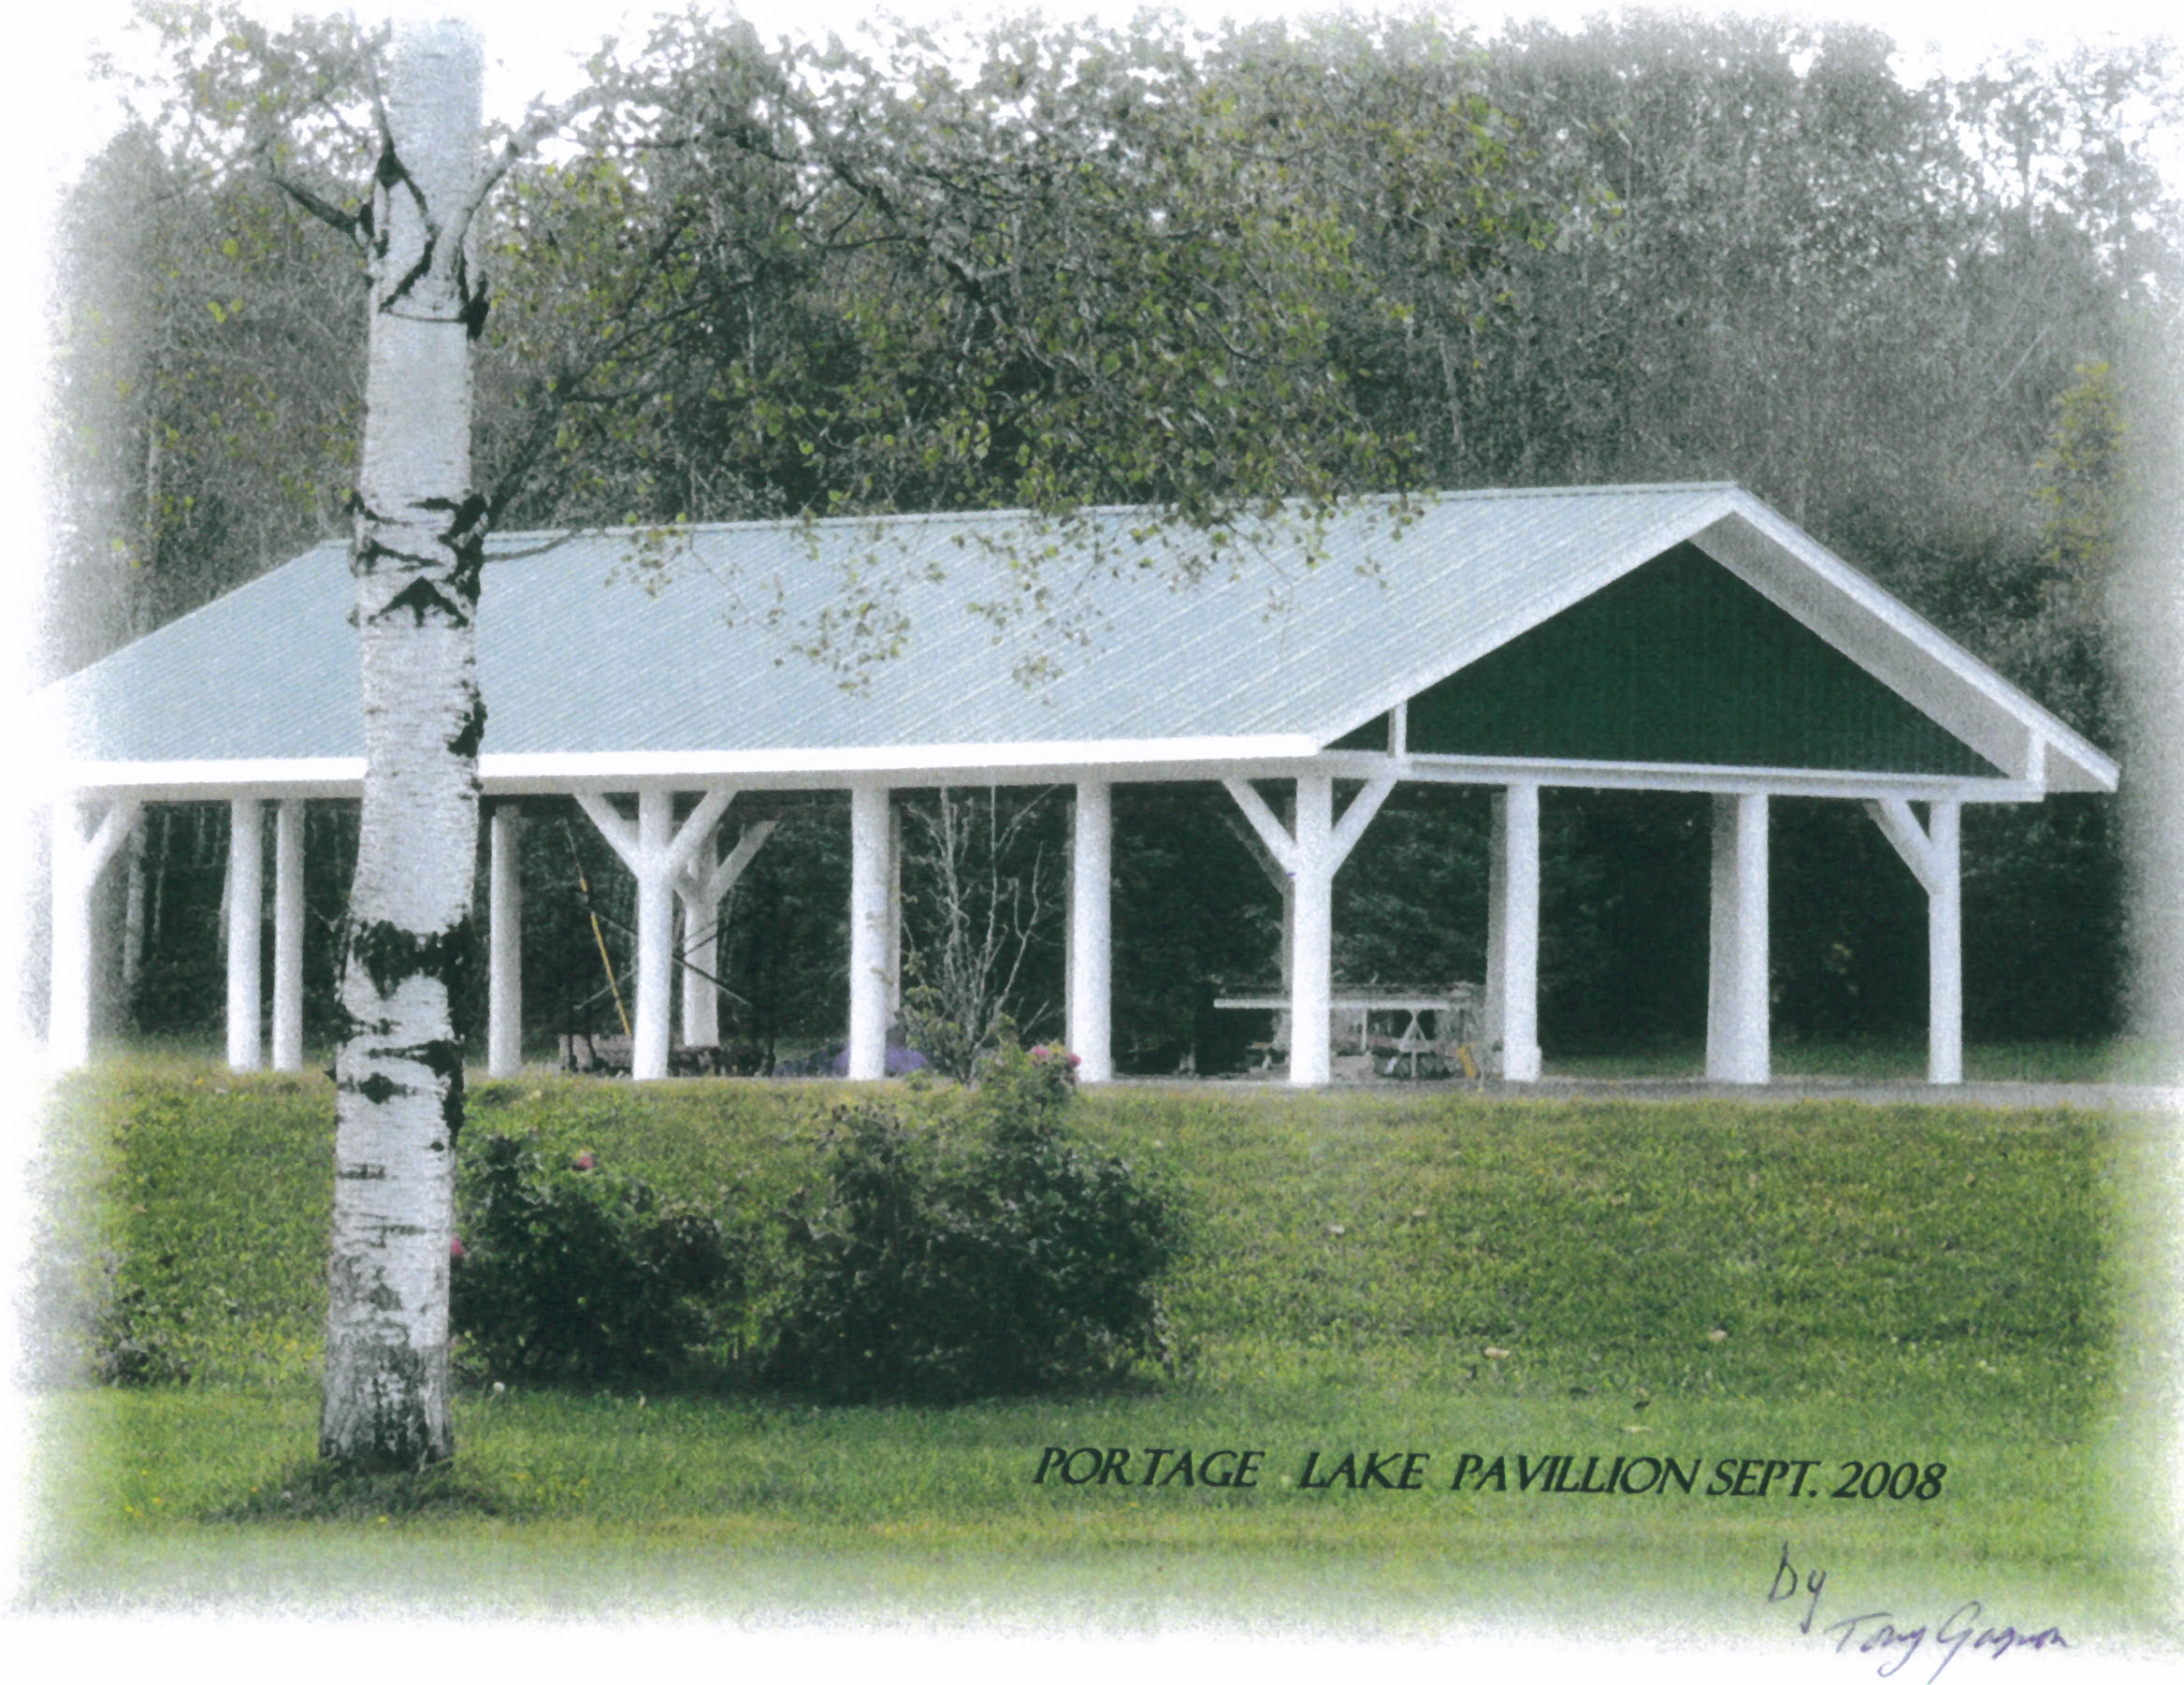 Town of Portage Pavillion